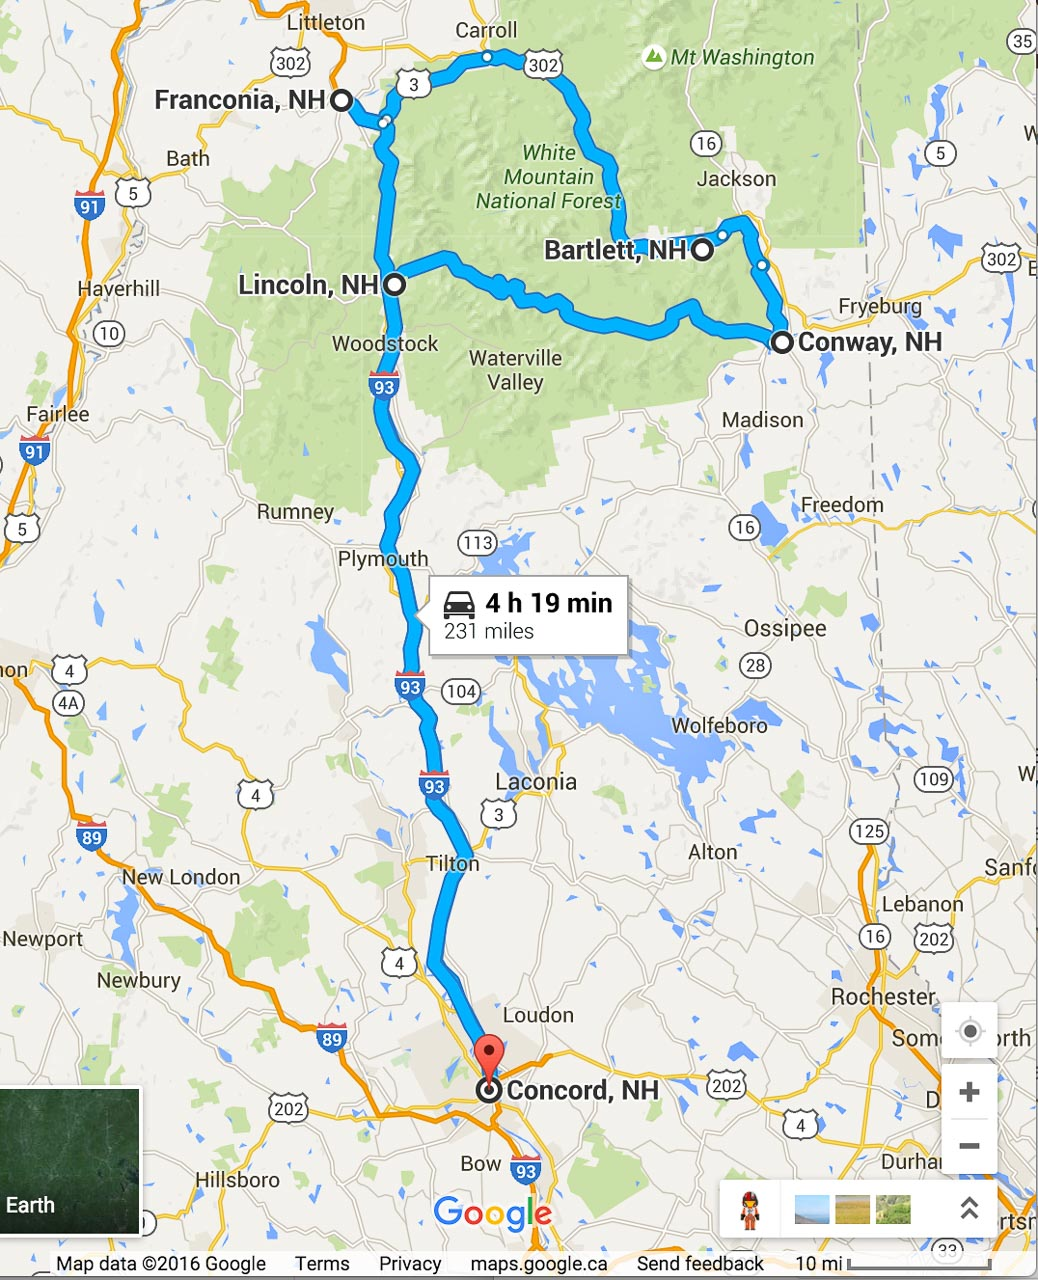 Road Trip Planner For The White Mountain National Forest